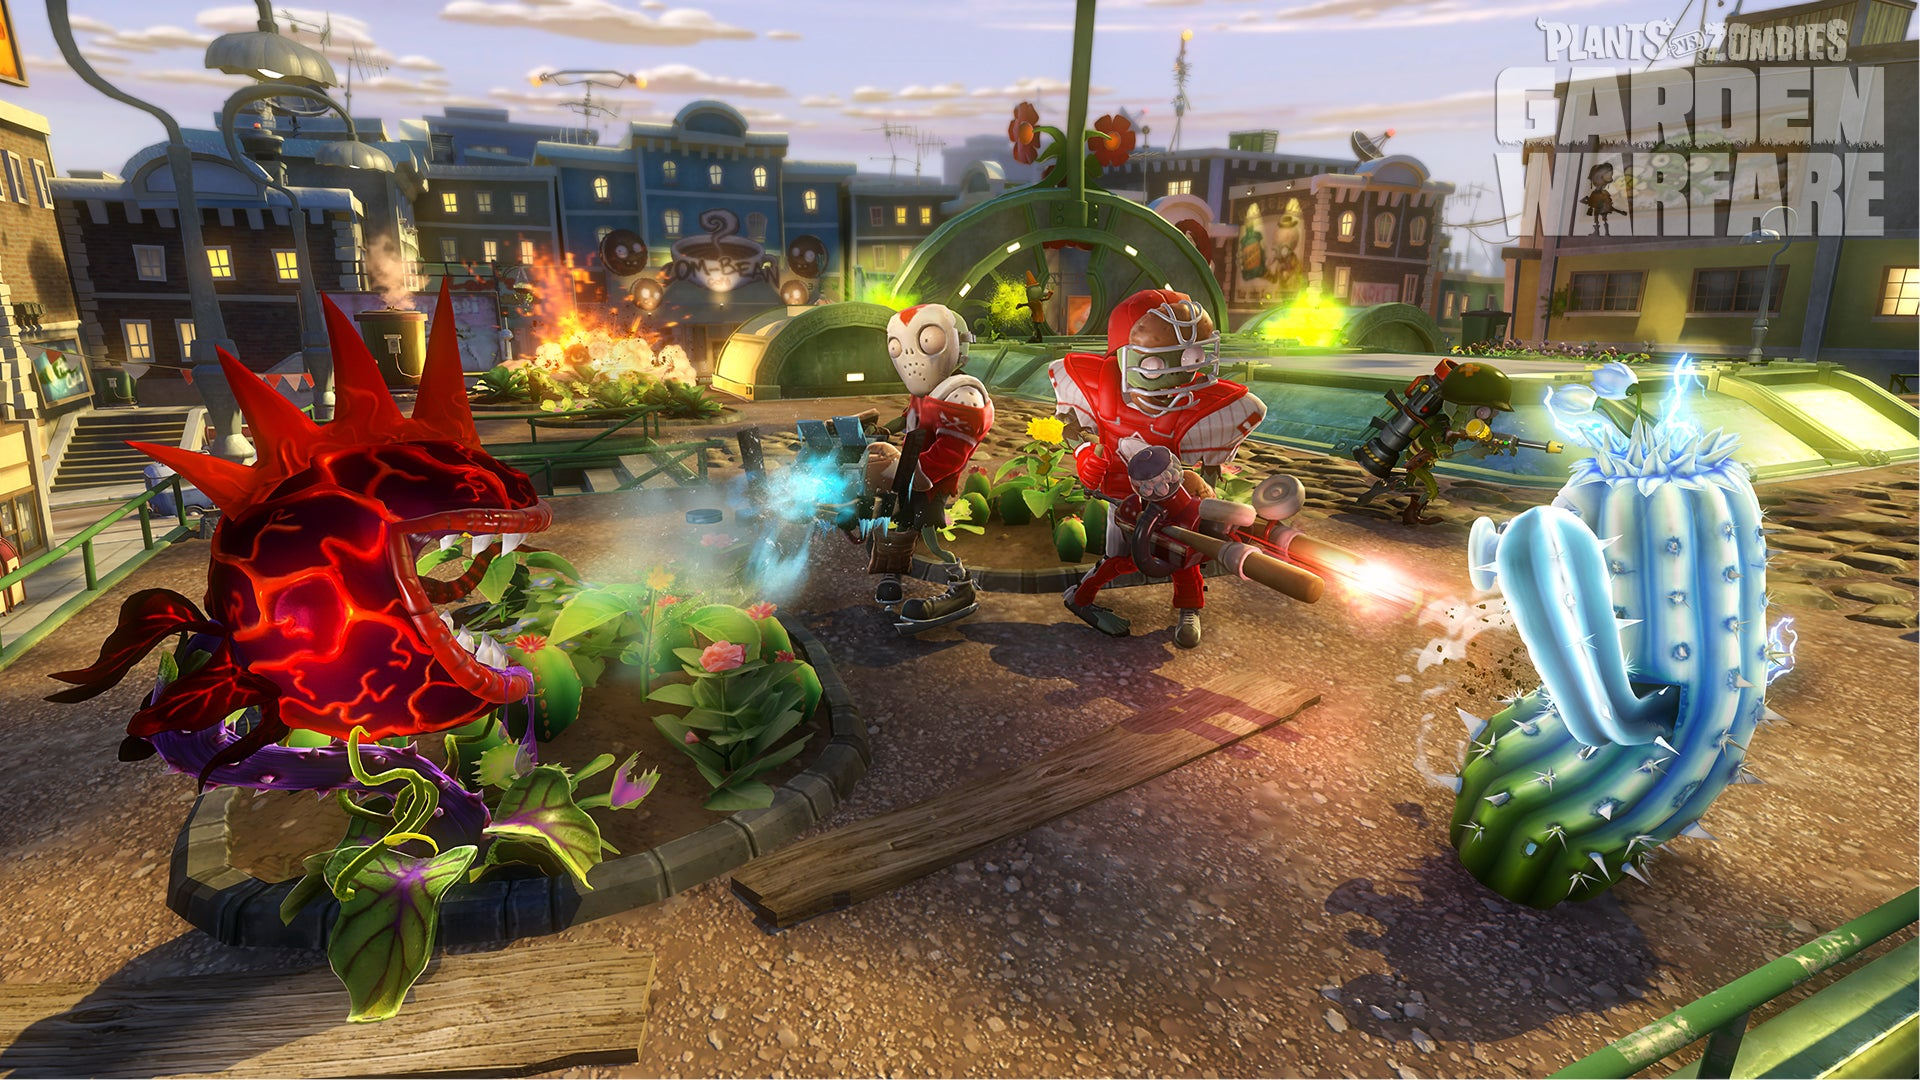 Plants Vs. Zombies: Garden Warfare: The Kotaku Review